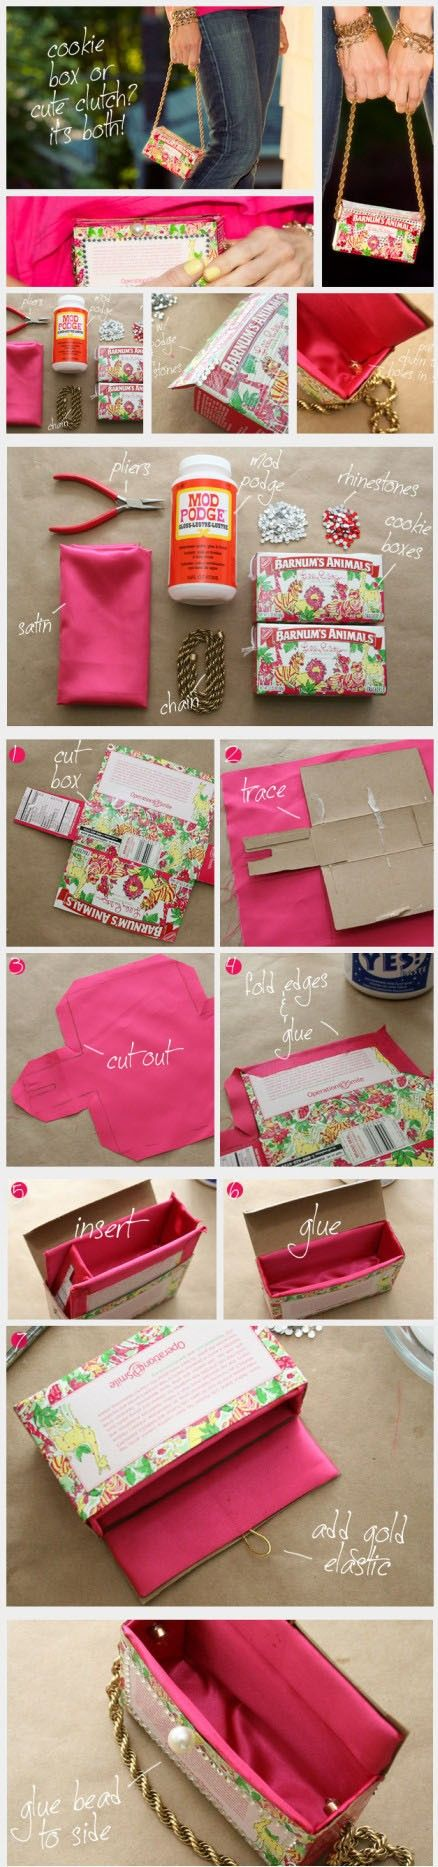 20 best crafts diy full of lovely things images on pinterest a use for my used lilly animal cracker box diy a cute purse out of a cardboard box and some mod podge interesting easy craft ideas solutioingenieria Images